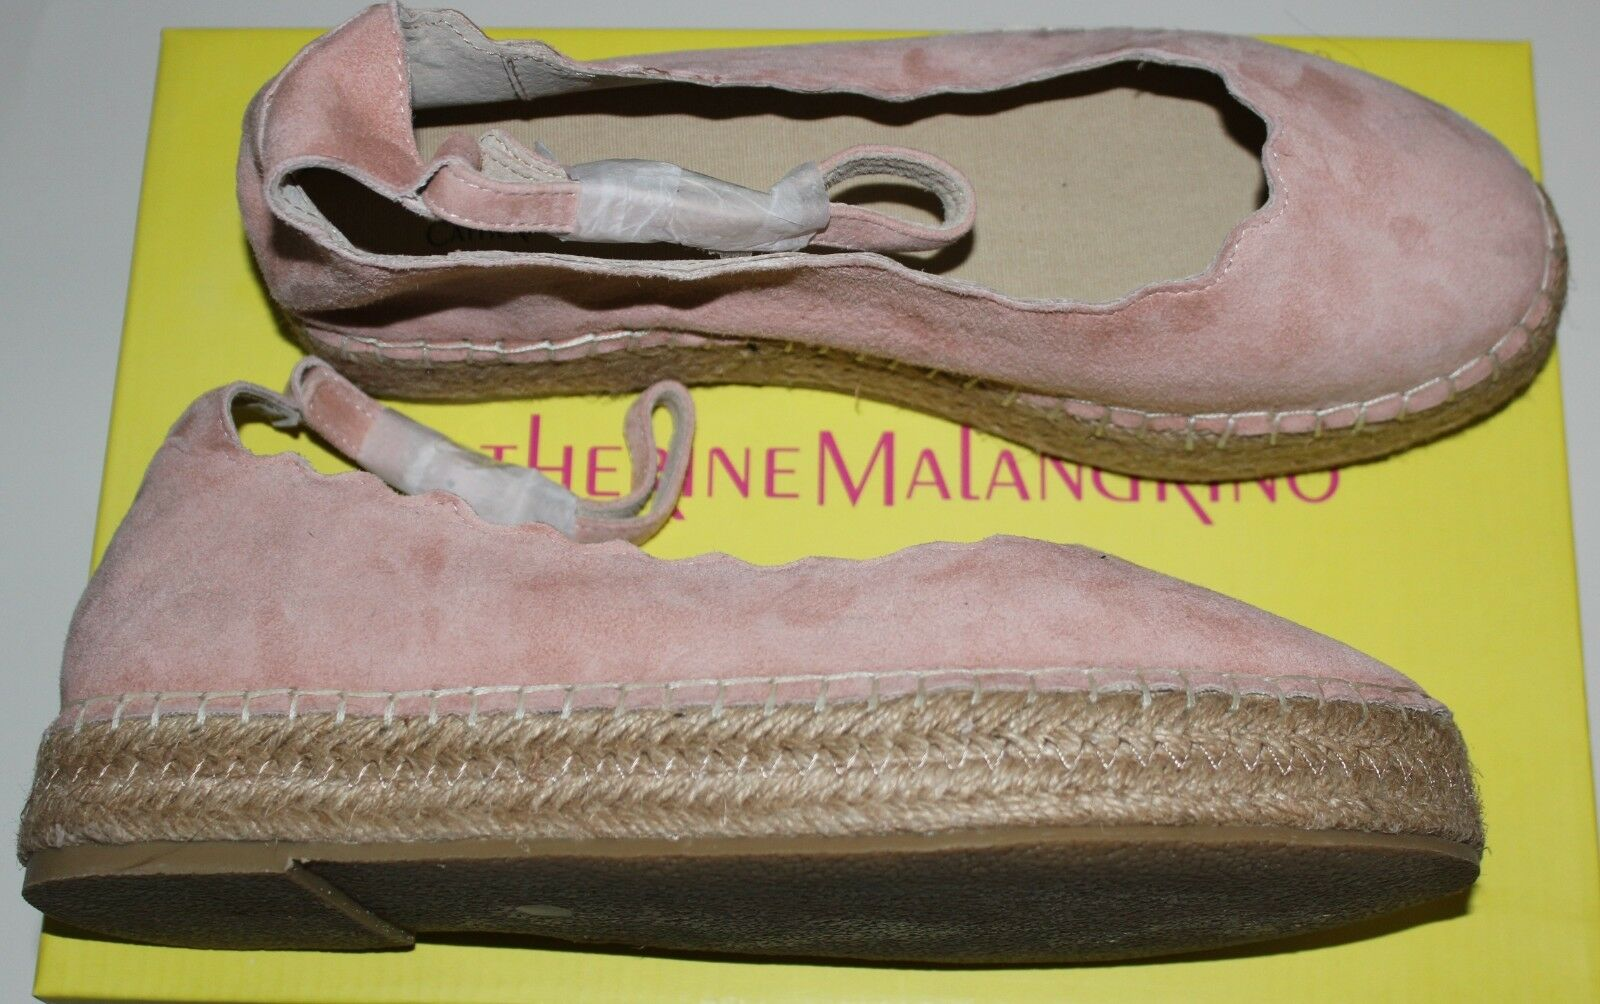 150 CATHERINE MALANDRINO AURONDY NUDE SUEDE SUEDE SUEDE ANKLE STRAP ESPADRILLE US 9 48f44f